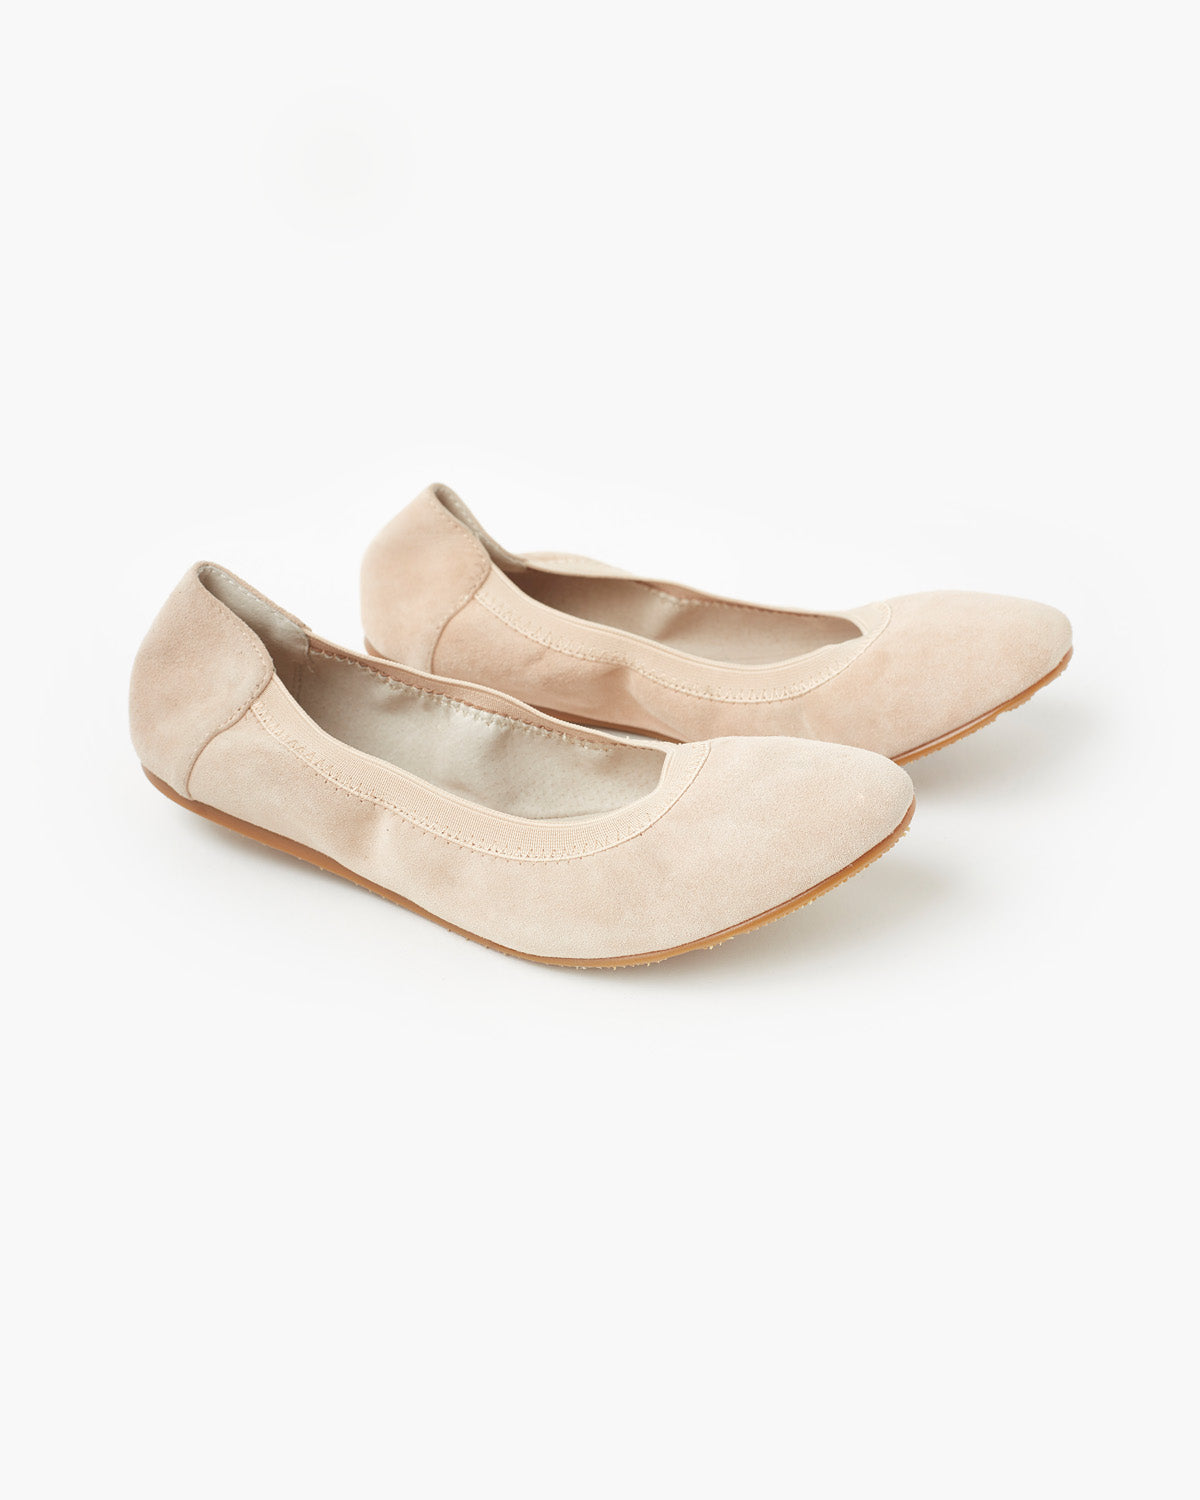 Ava Leather Ballet Flat - Blush Suede